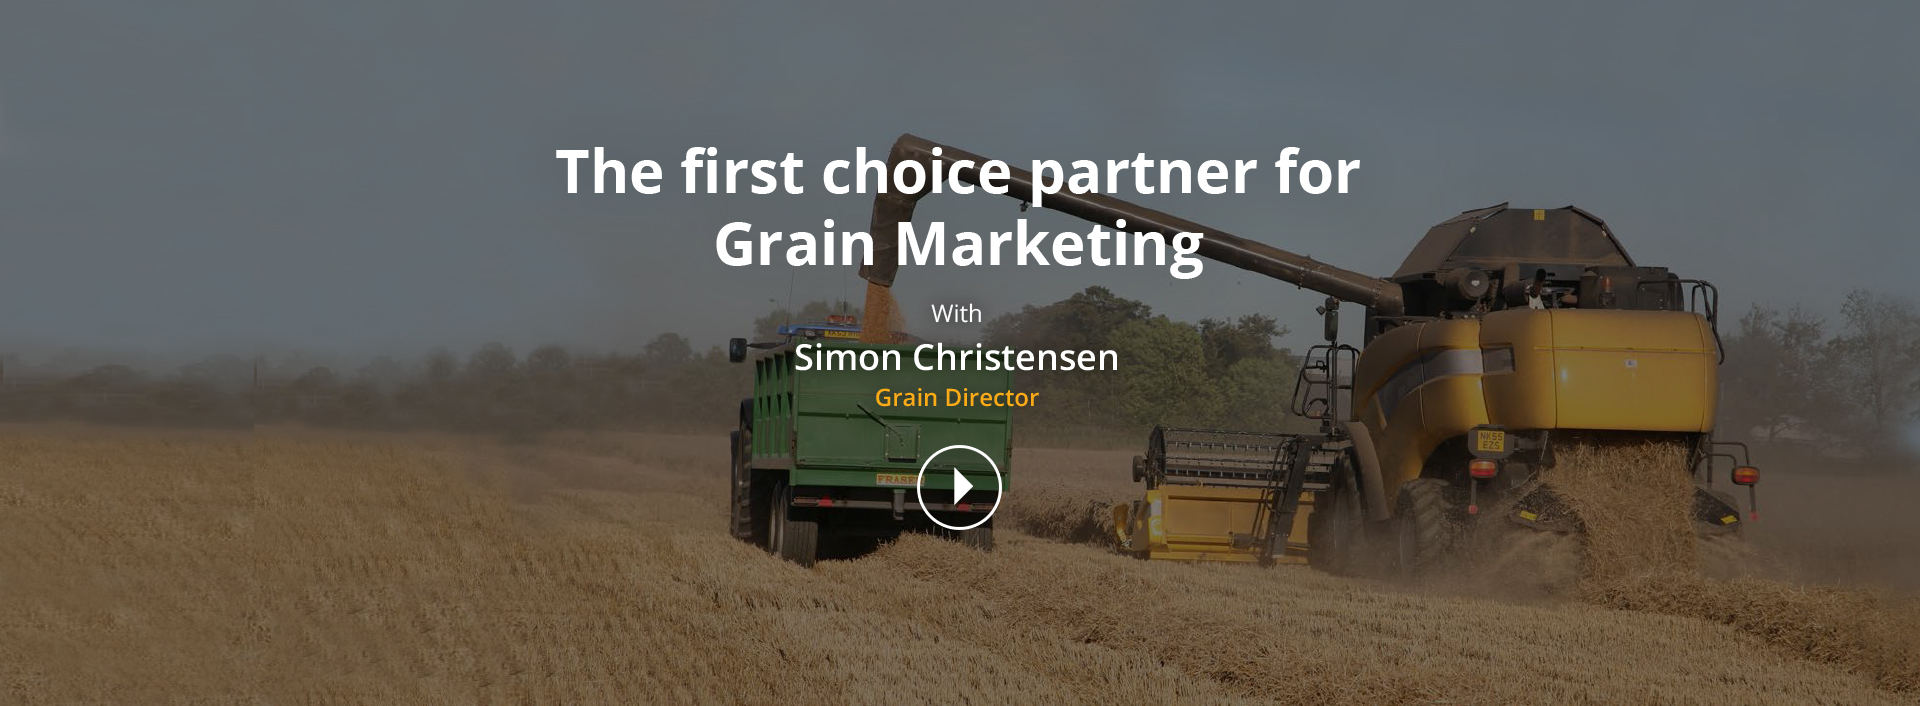 The first choice partner for Grain Marketing